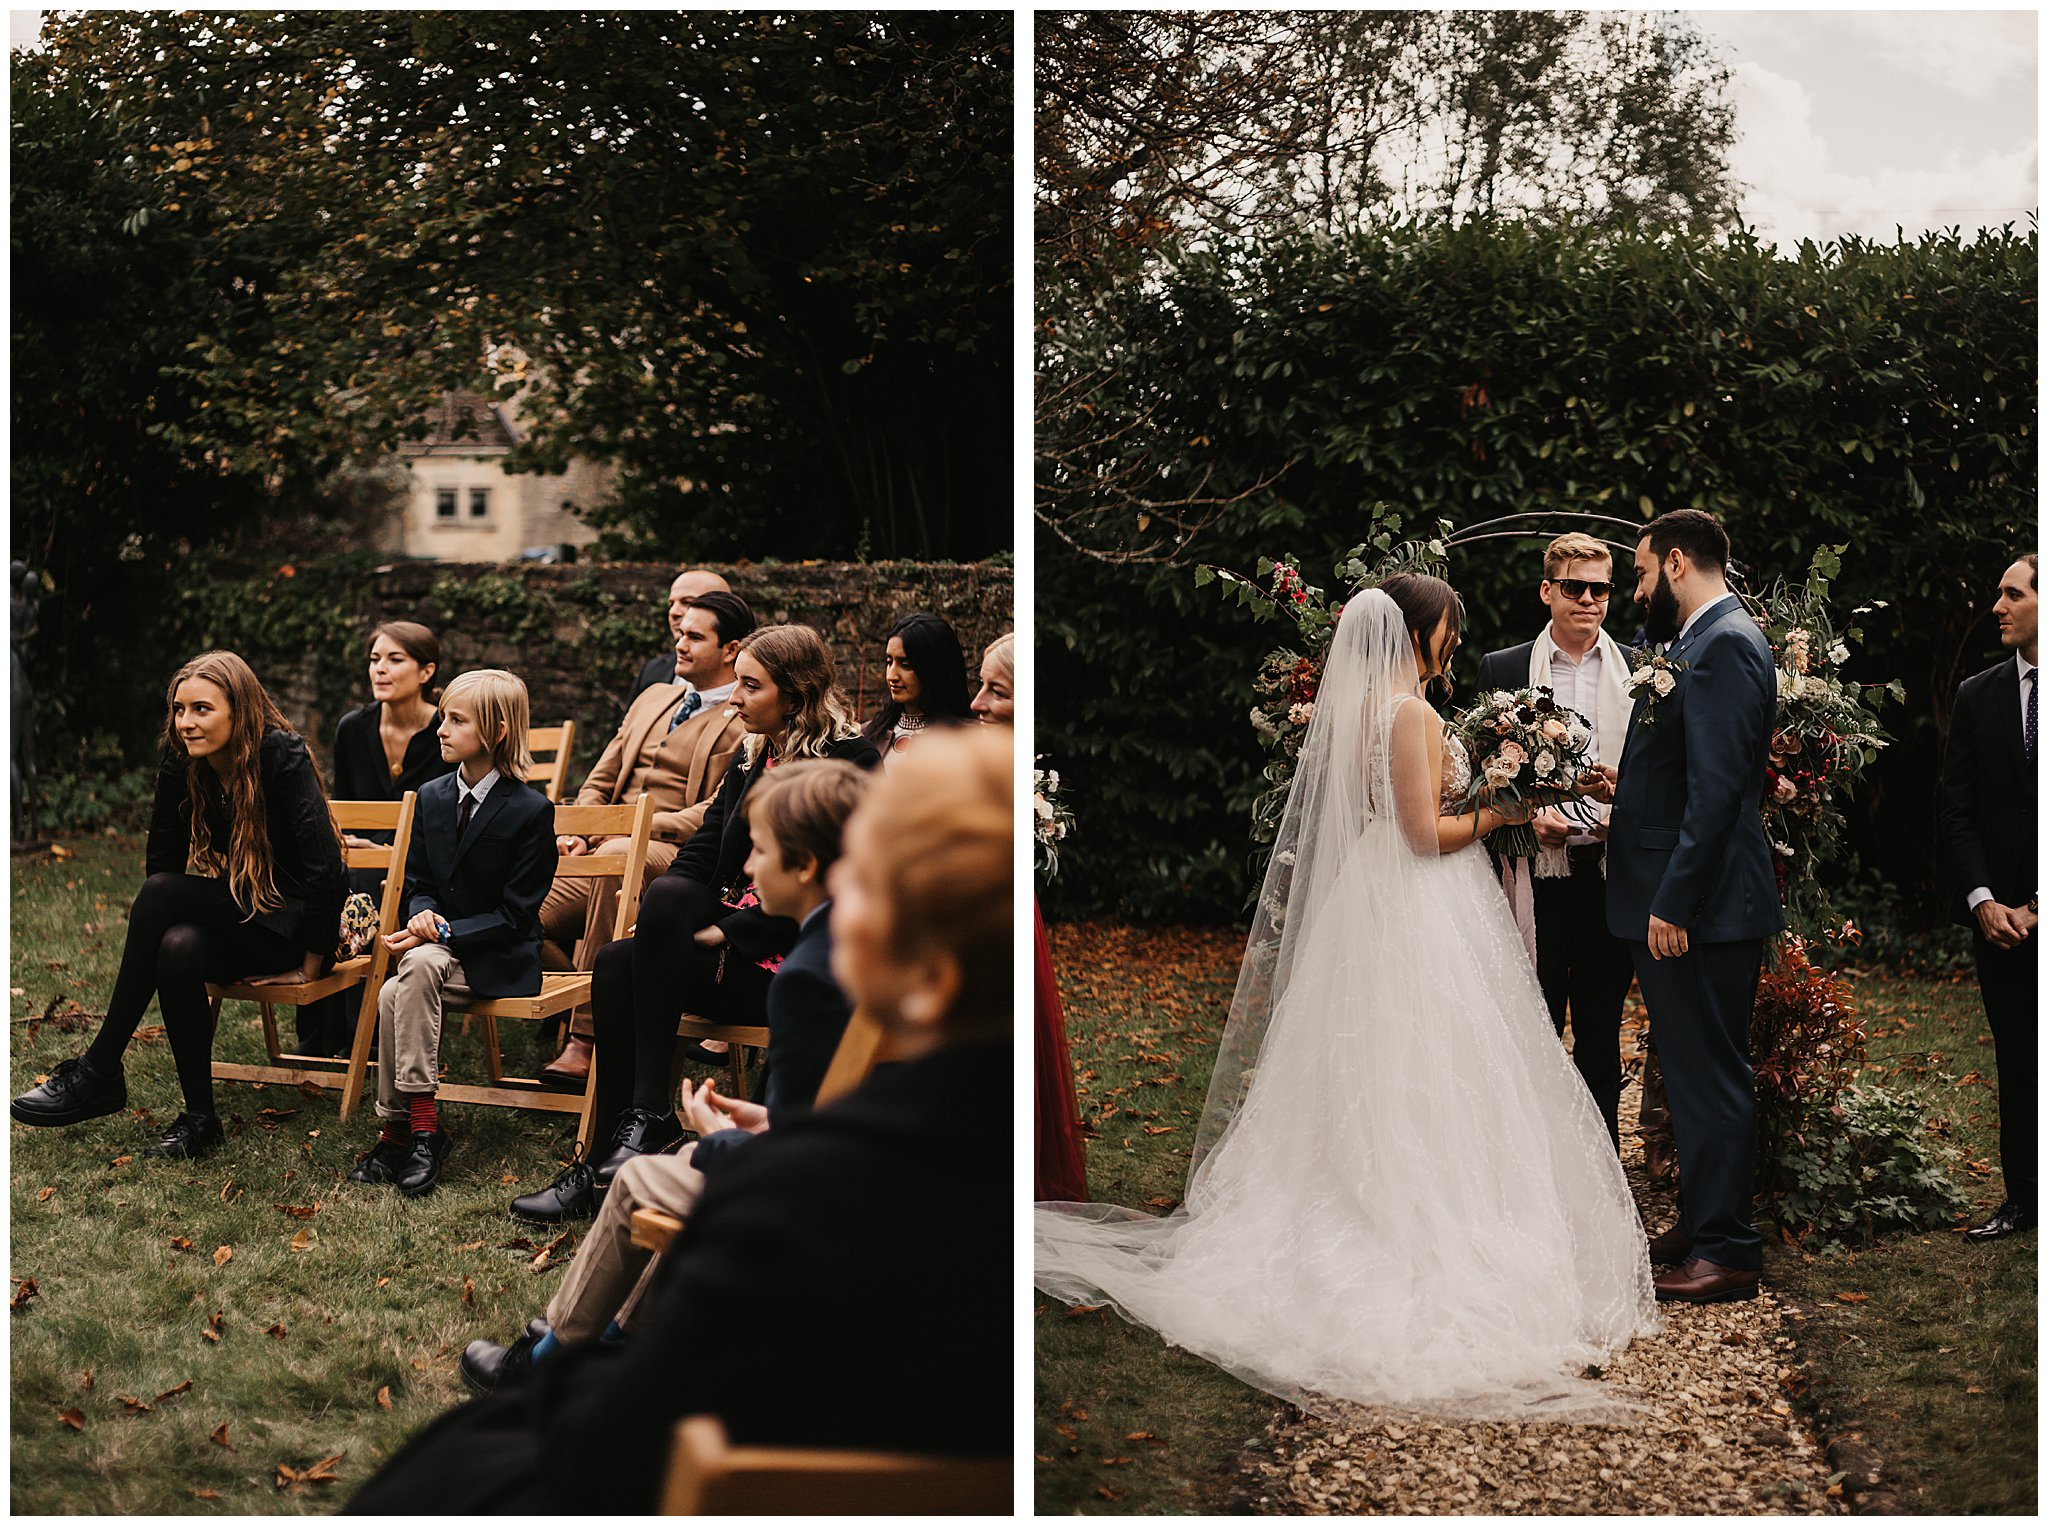 Max & Ksenia Autumnal Wiltshire Wedding-249.jpg